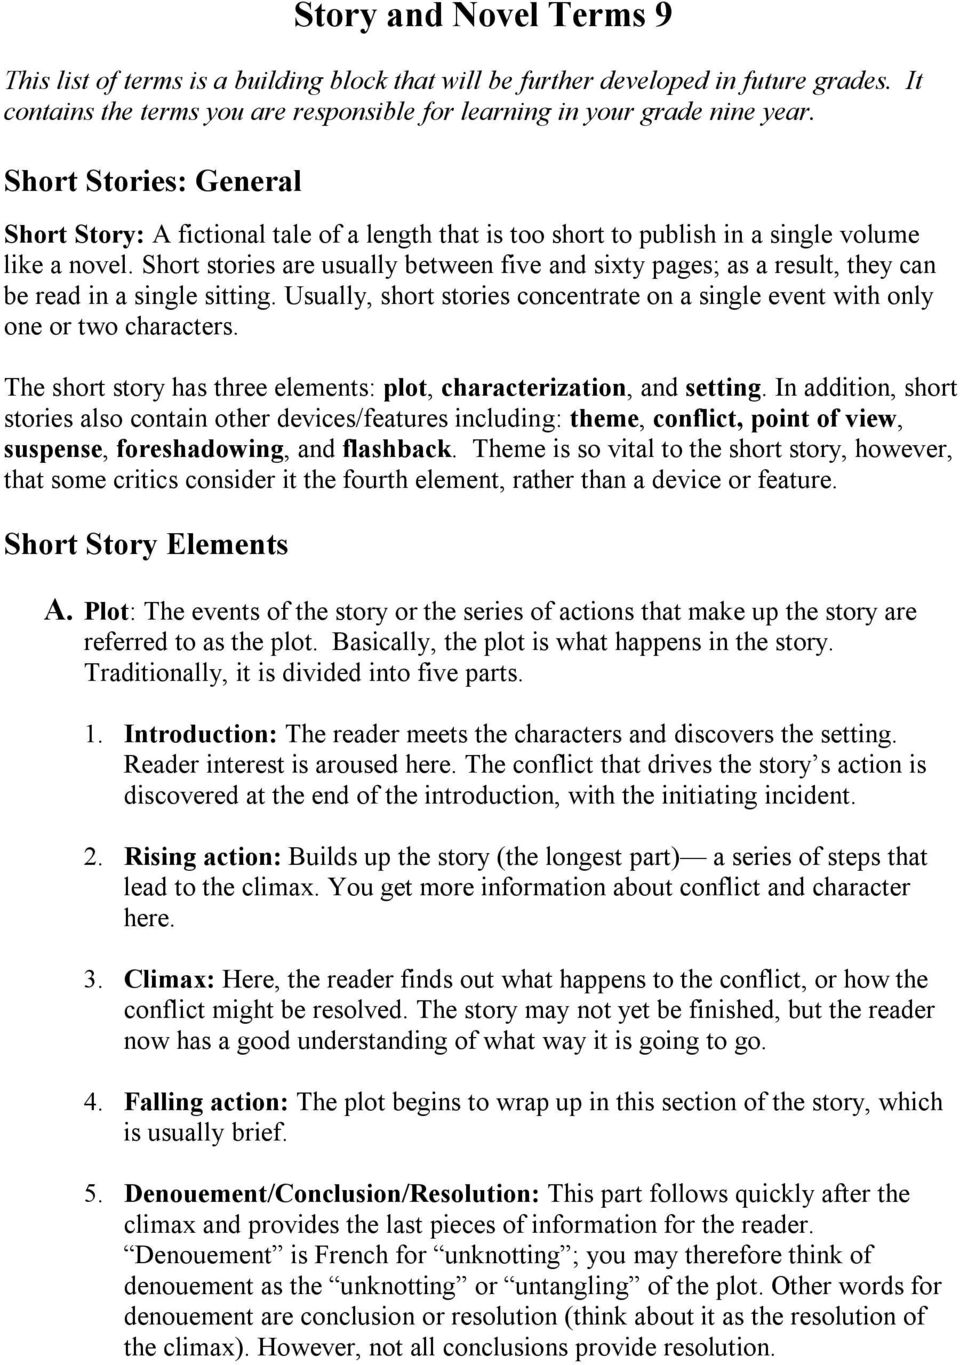 Story and Novel Terms 9 - PDF